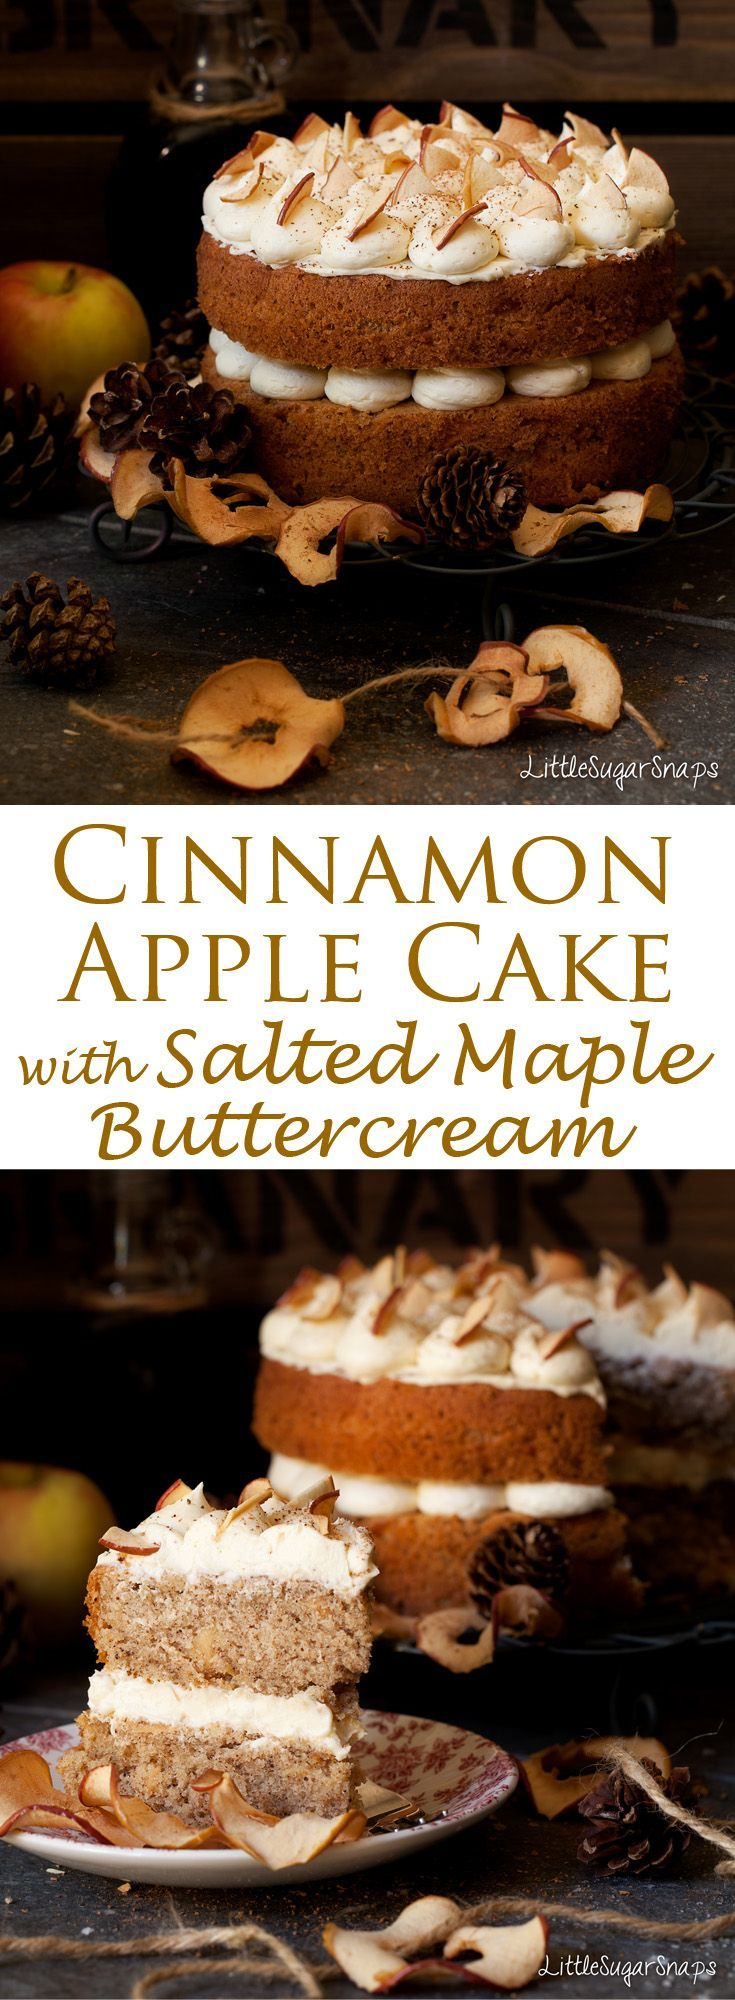 This Cinnamon Apple Cake is a light and bouncy sponge cake